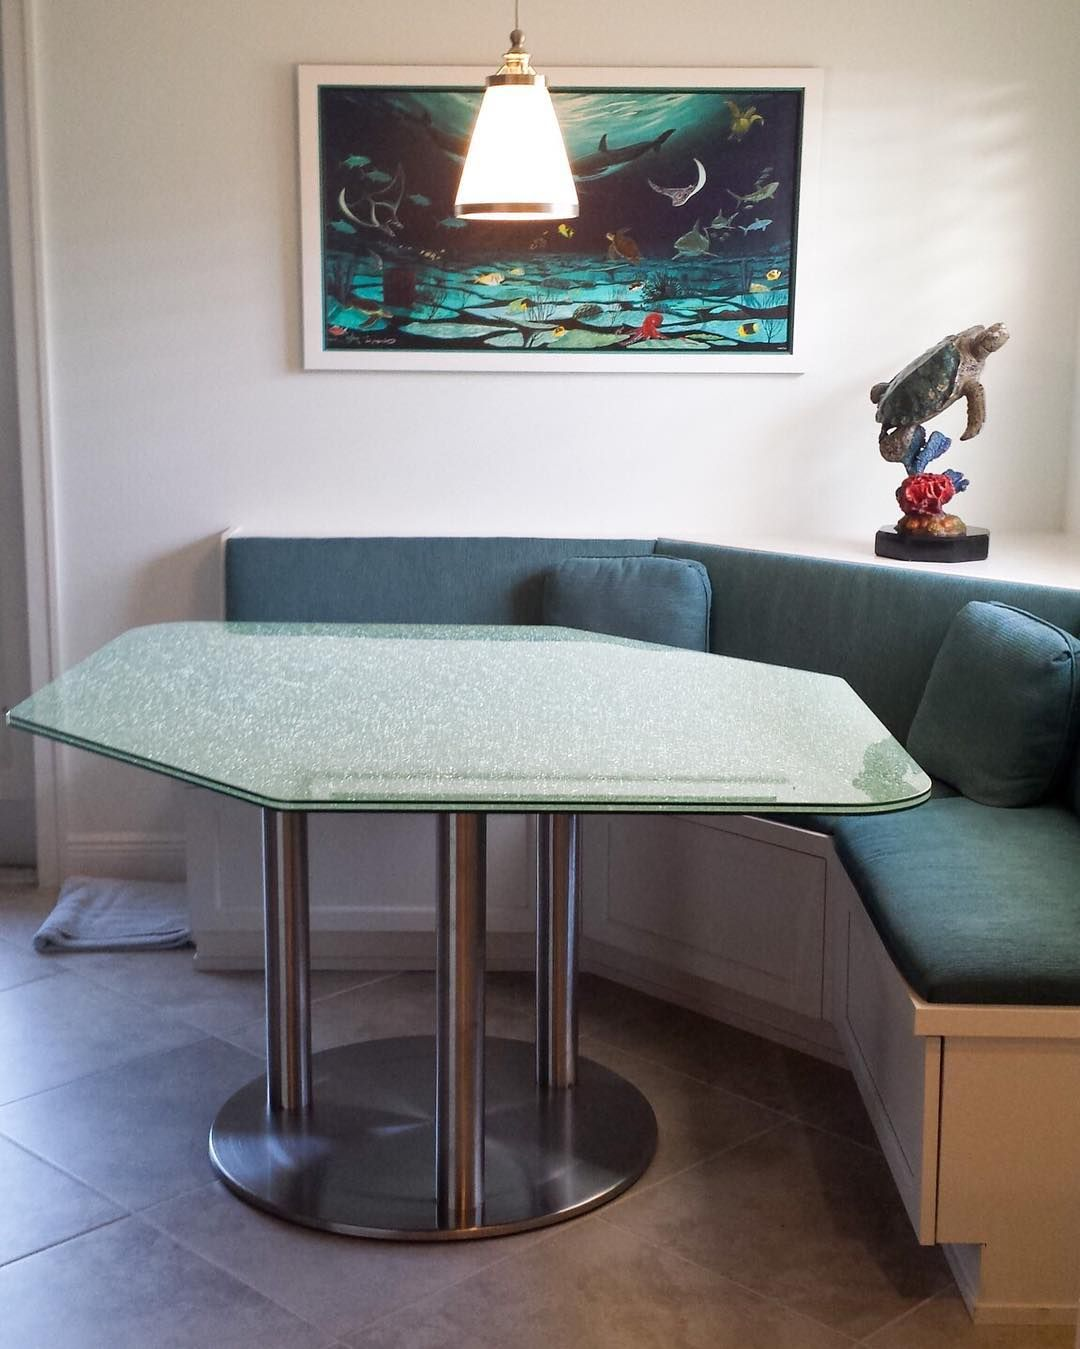 This Photo Comes Courtesy Of Kathy Frizzel Who Used Our RFLX - Custom stainless steel table top